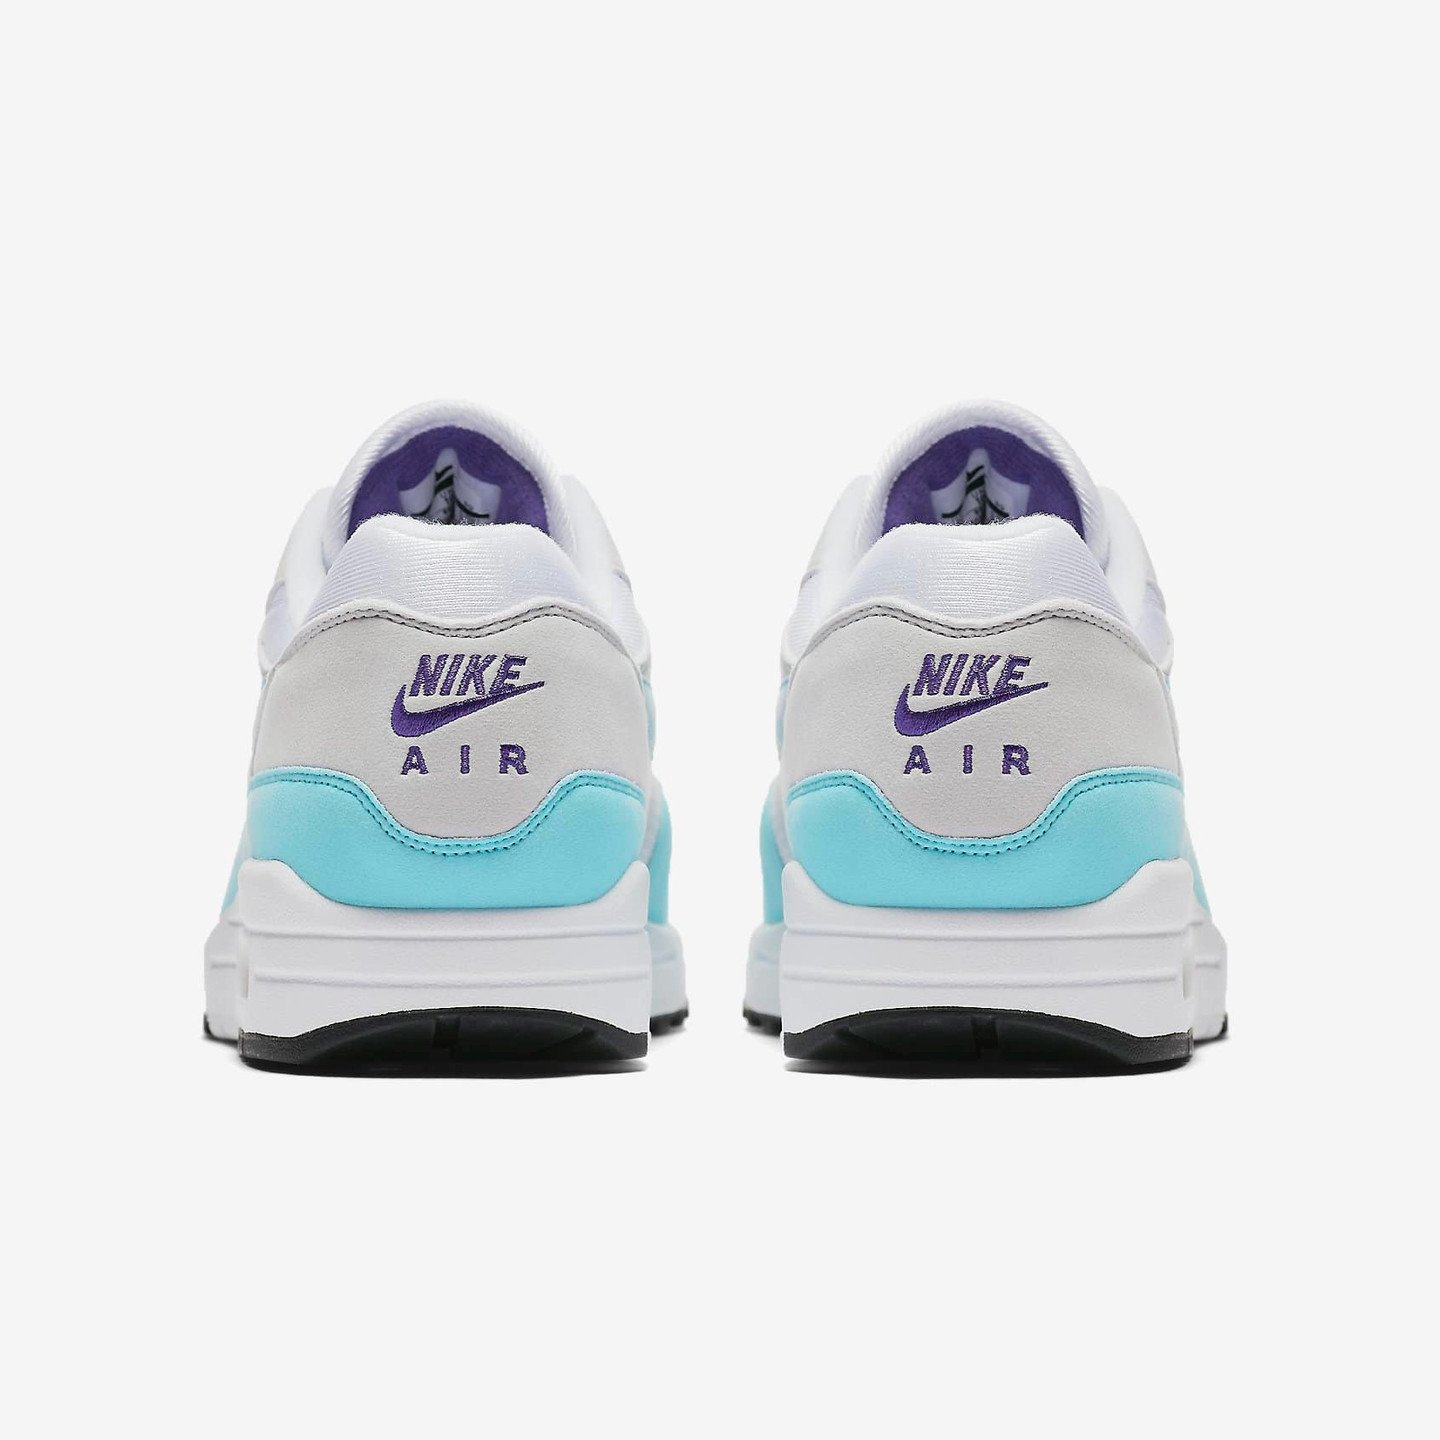 Nike Air Max 1 OG Anniversary White / Aqua / Neutral Grey /  Black 908375-105